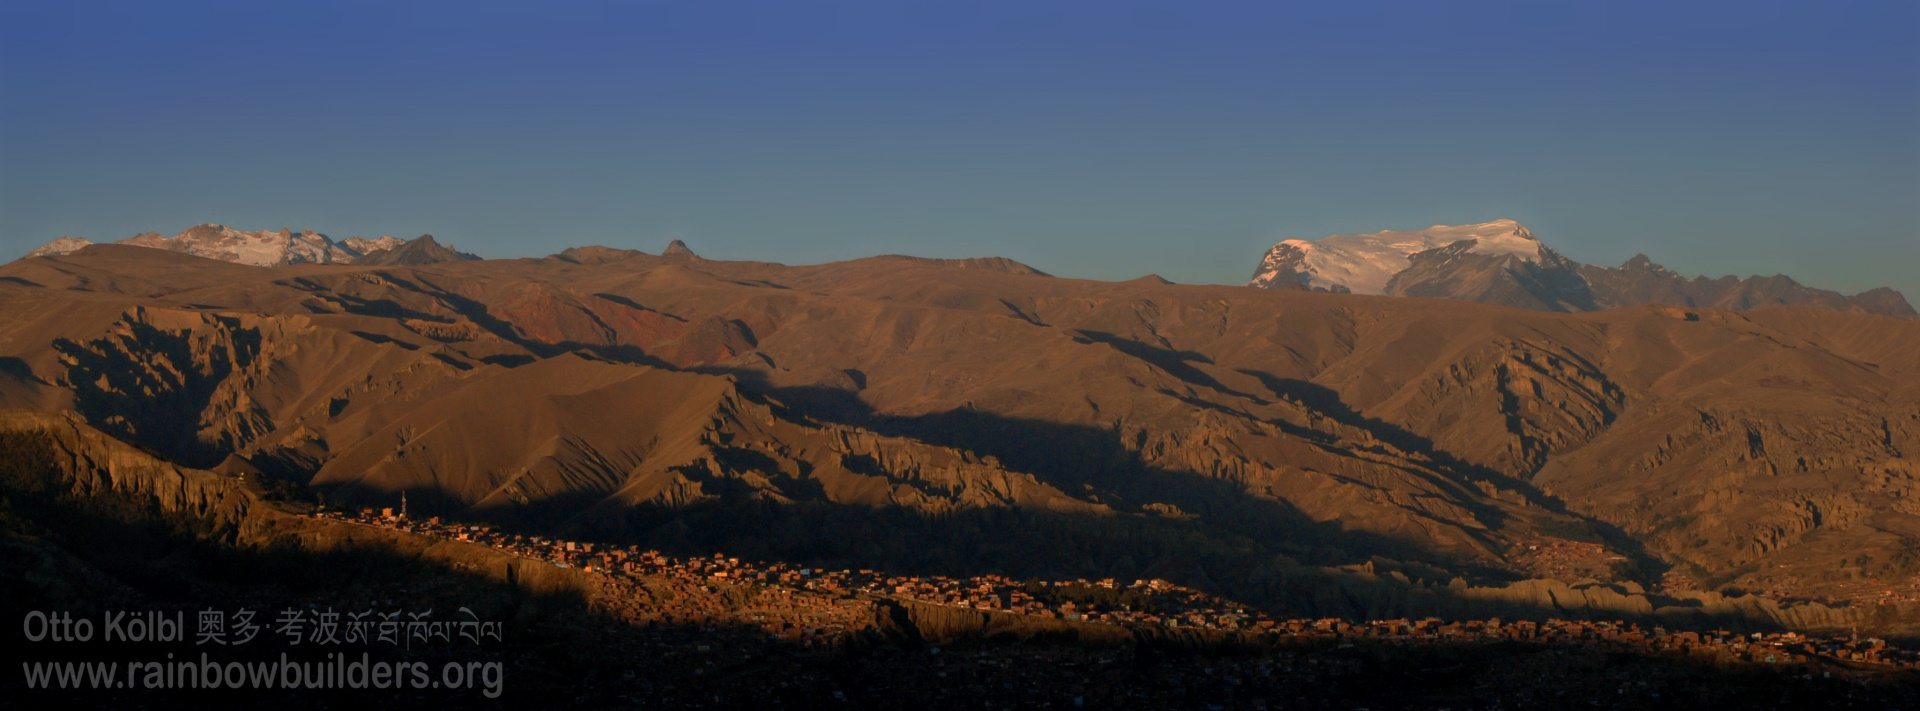 The Andes mountain range gives each photo of La Paz a special touch.